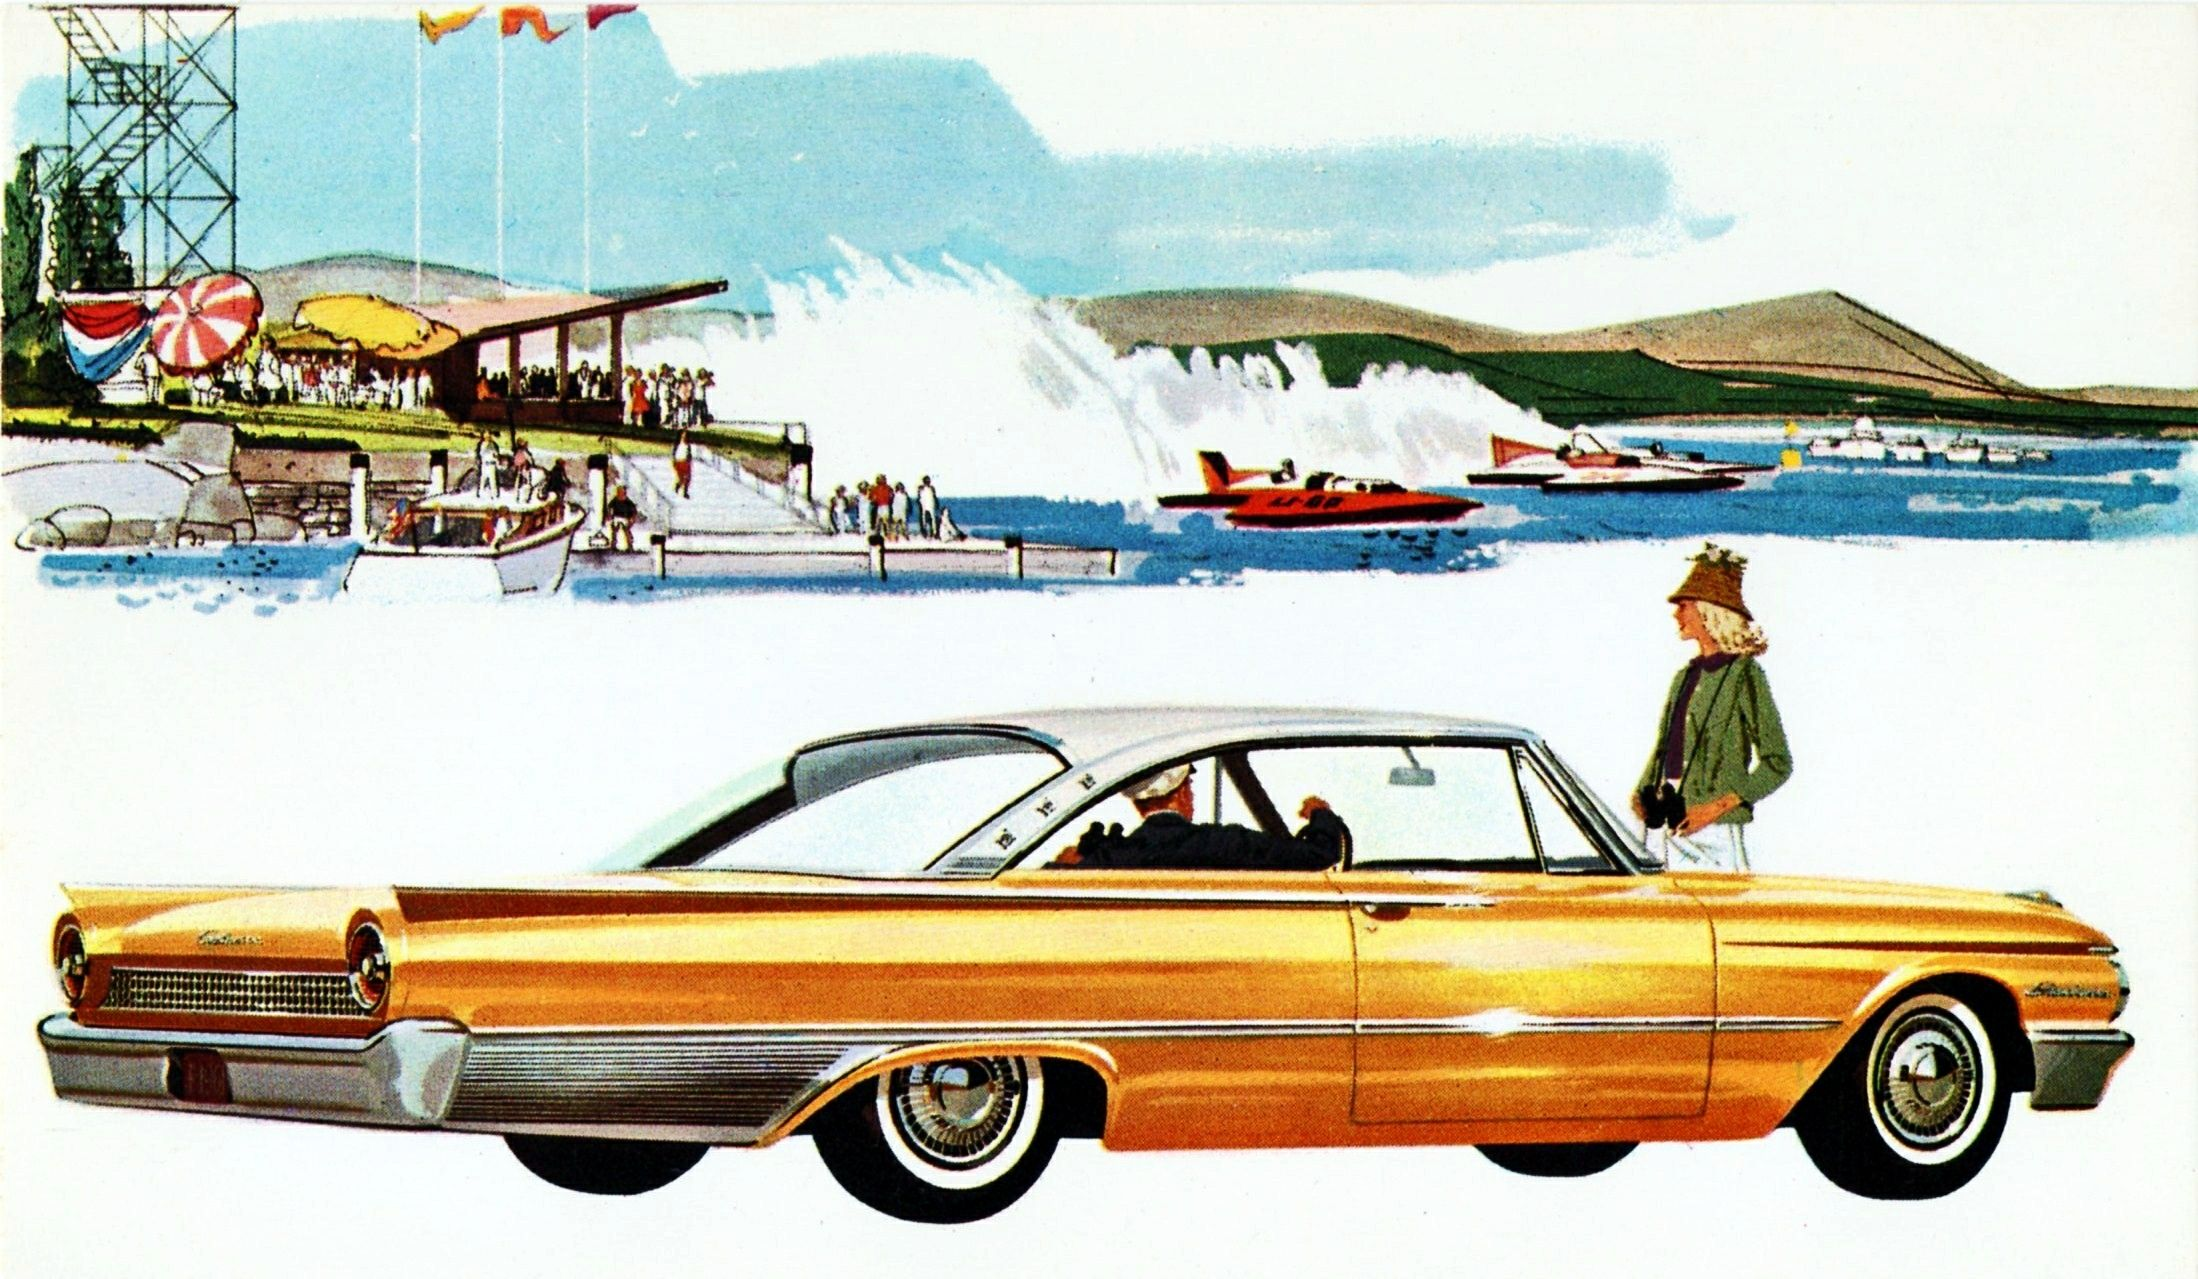 All sizes | 1961 Ford Starliner | Flickr - Photo Sharing!  sc 1 st  Pinterest : ford car sizes - markmcfarlin.com